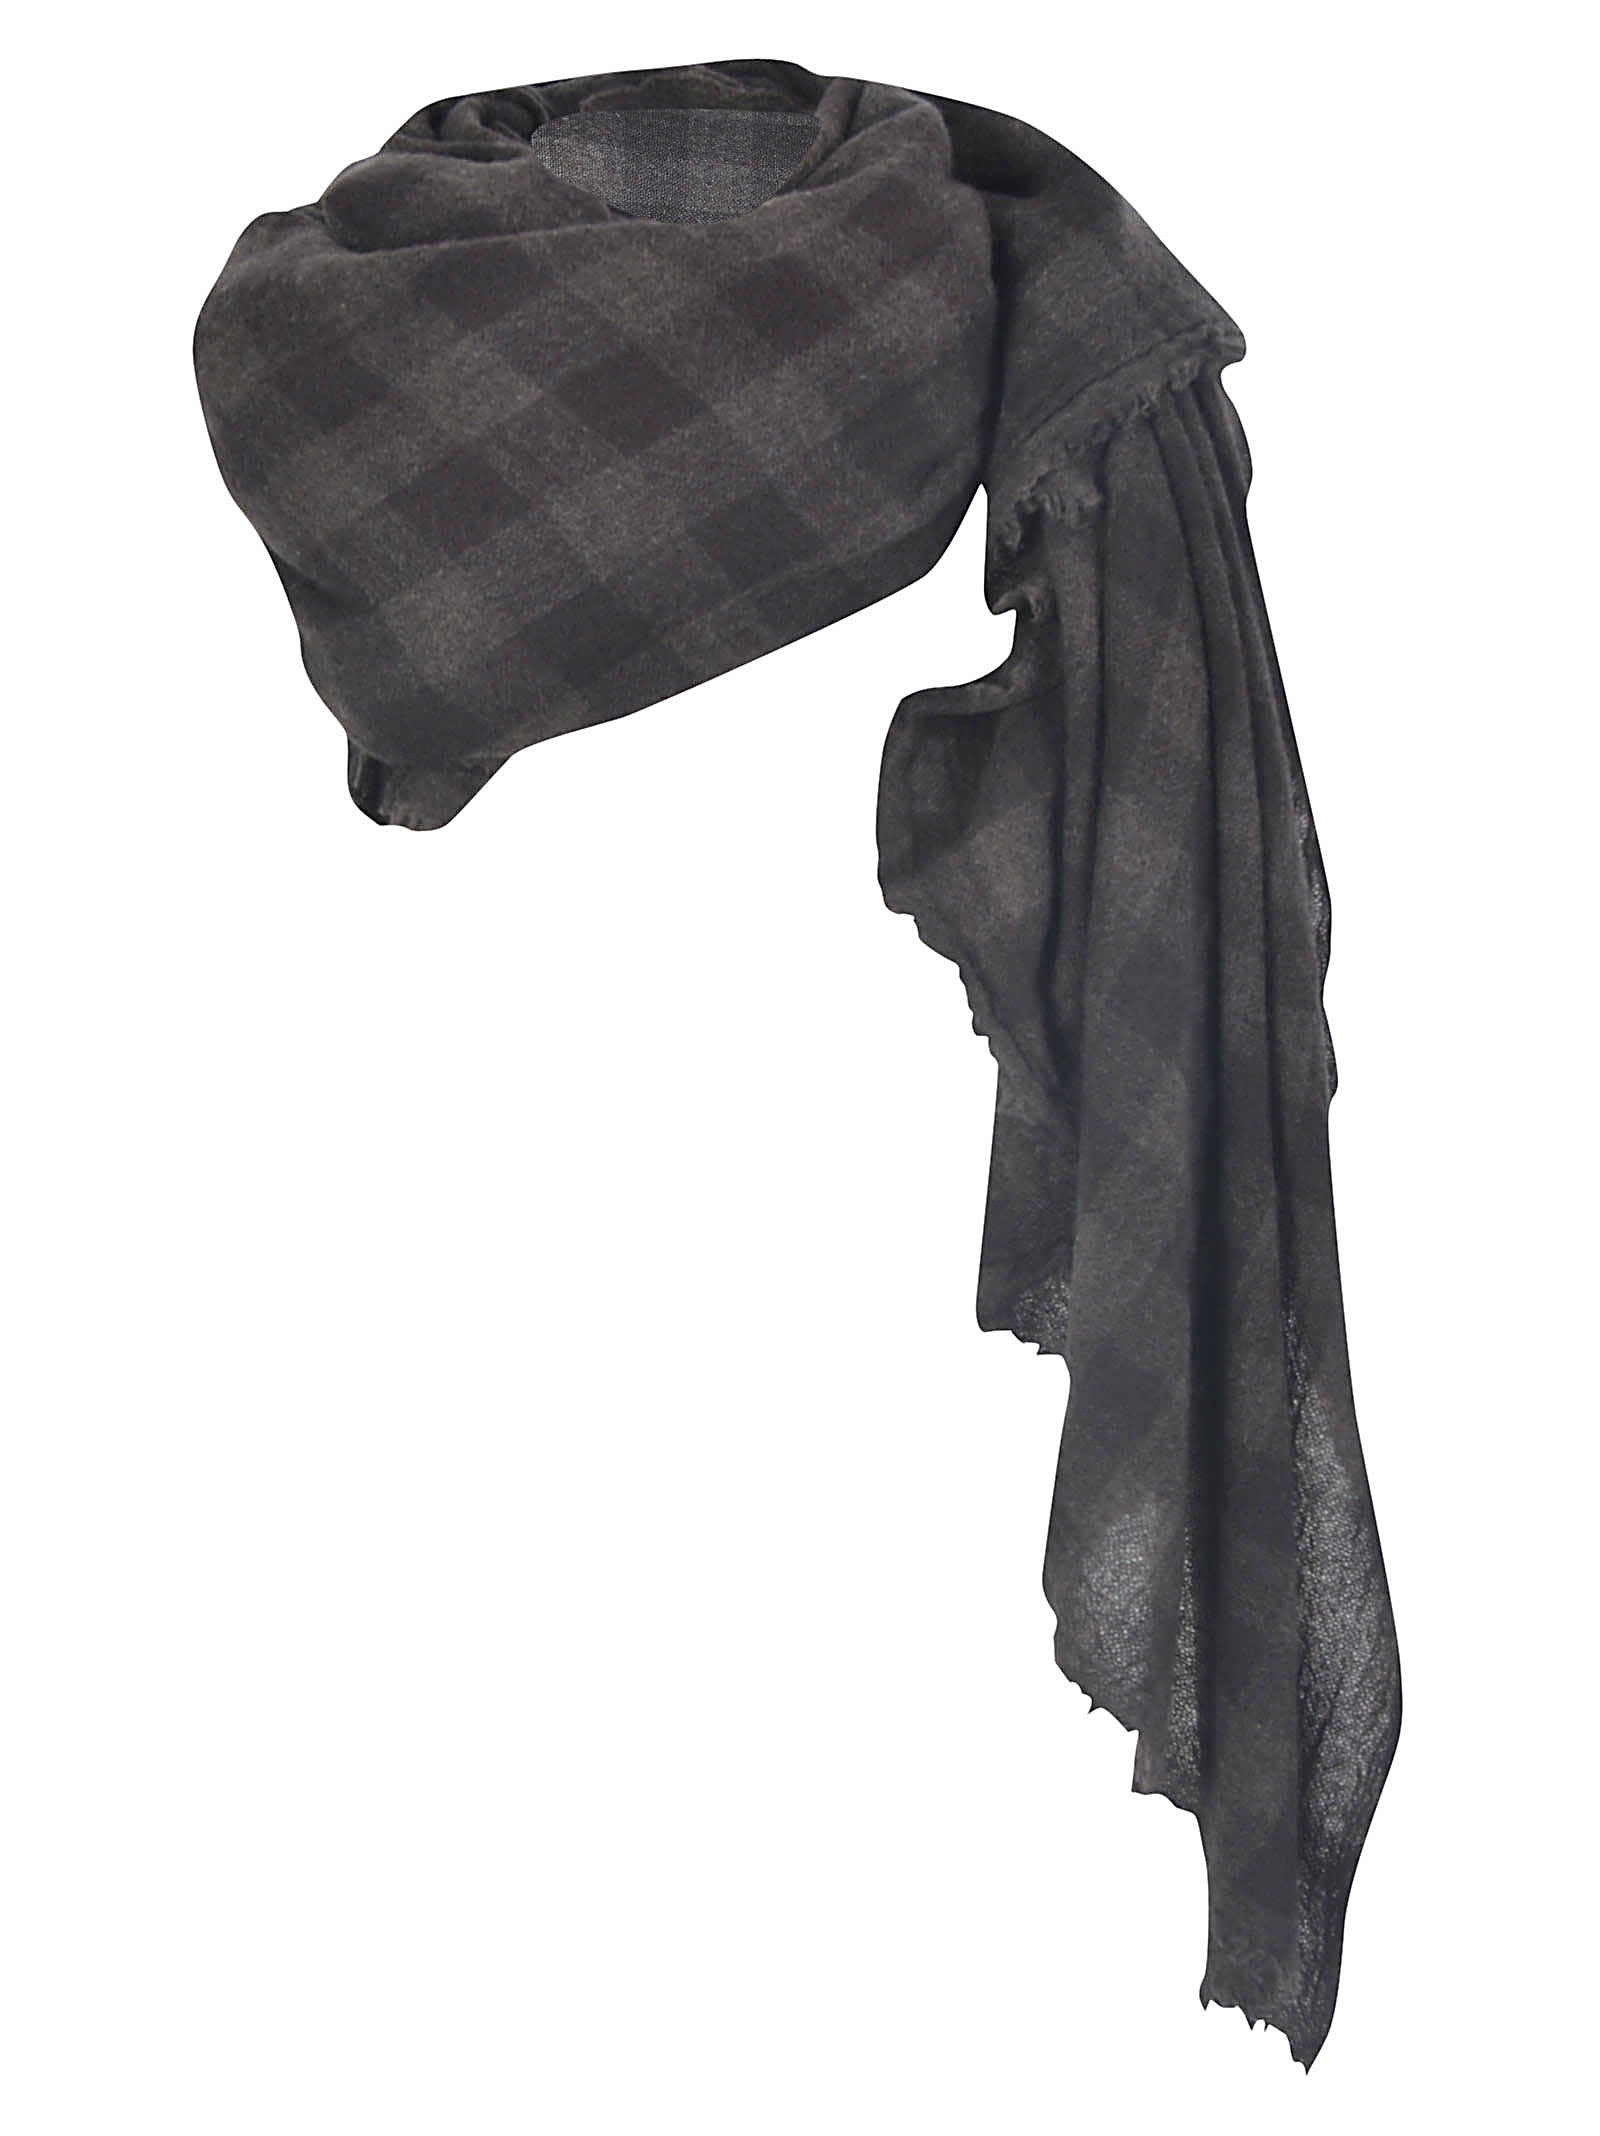 A Punto B Scarves FRINGED CHECK SCARF